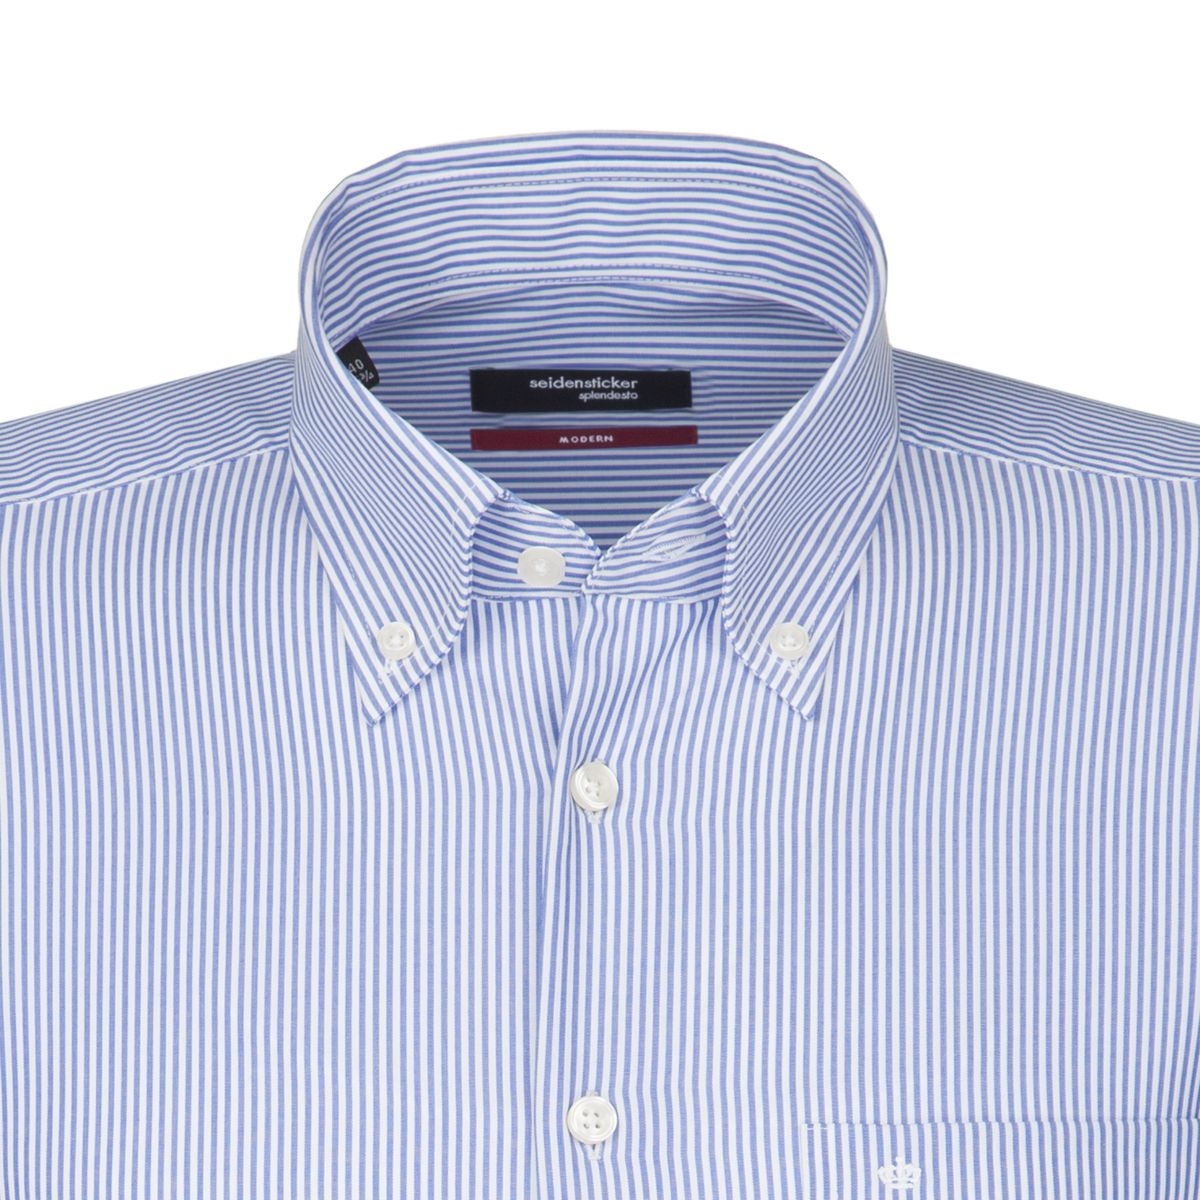 Chemise MODERN rayures Bengale bleues col boutonné